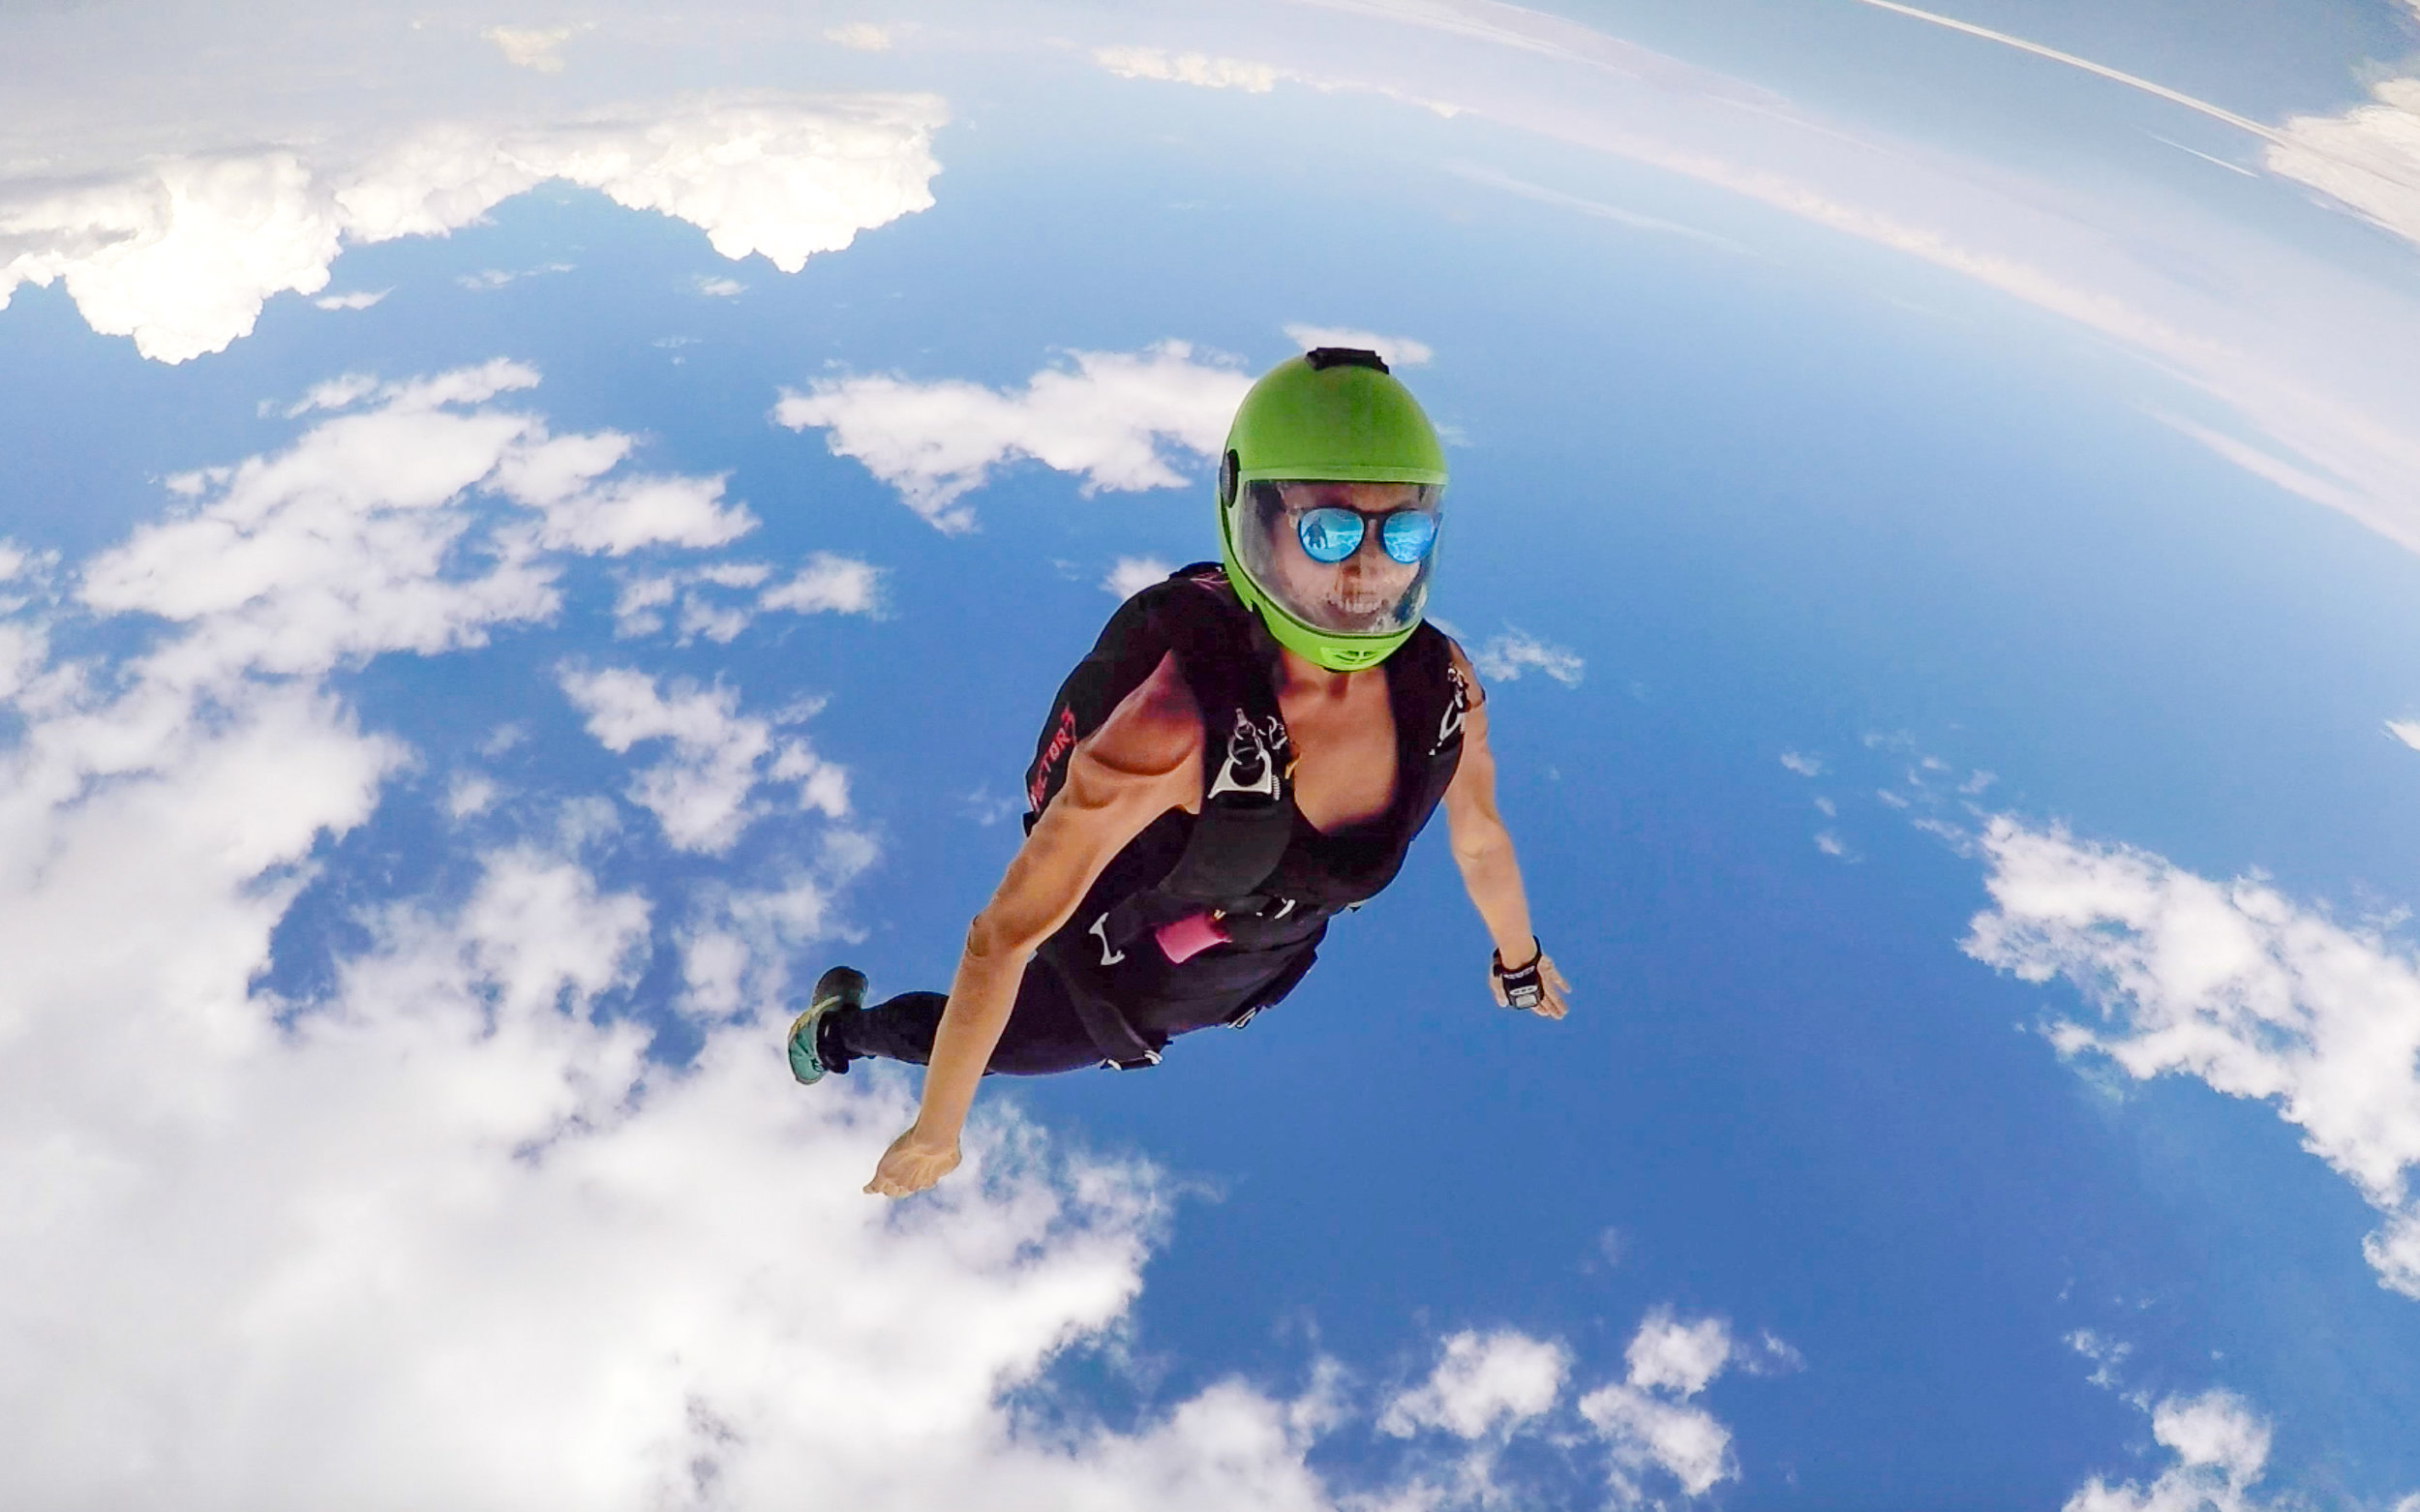 5 Reasons to Skydive (That Have Nothing to Do with